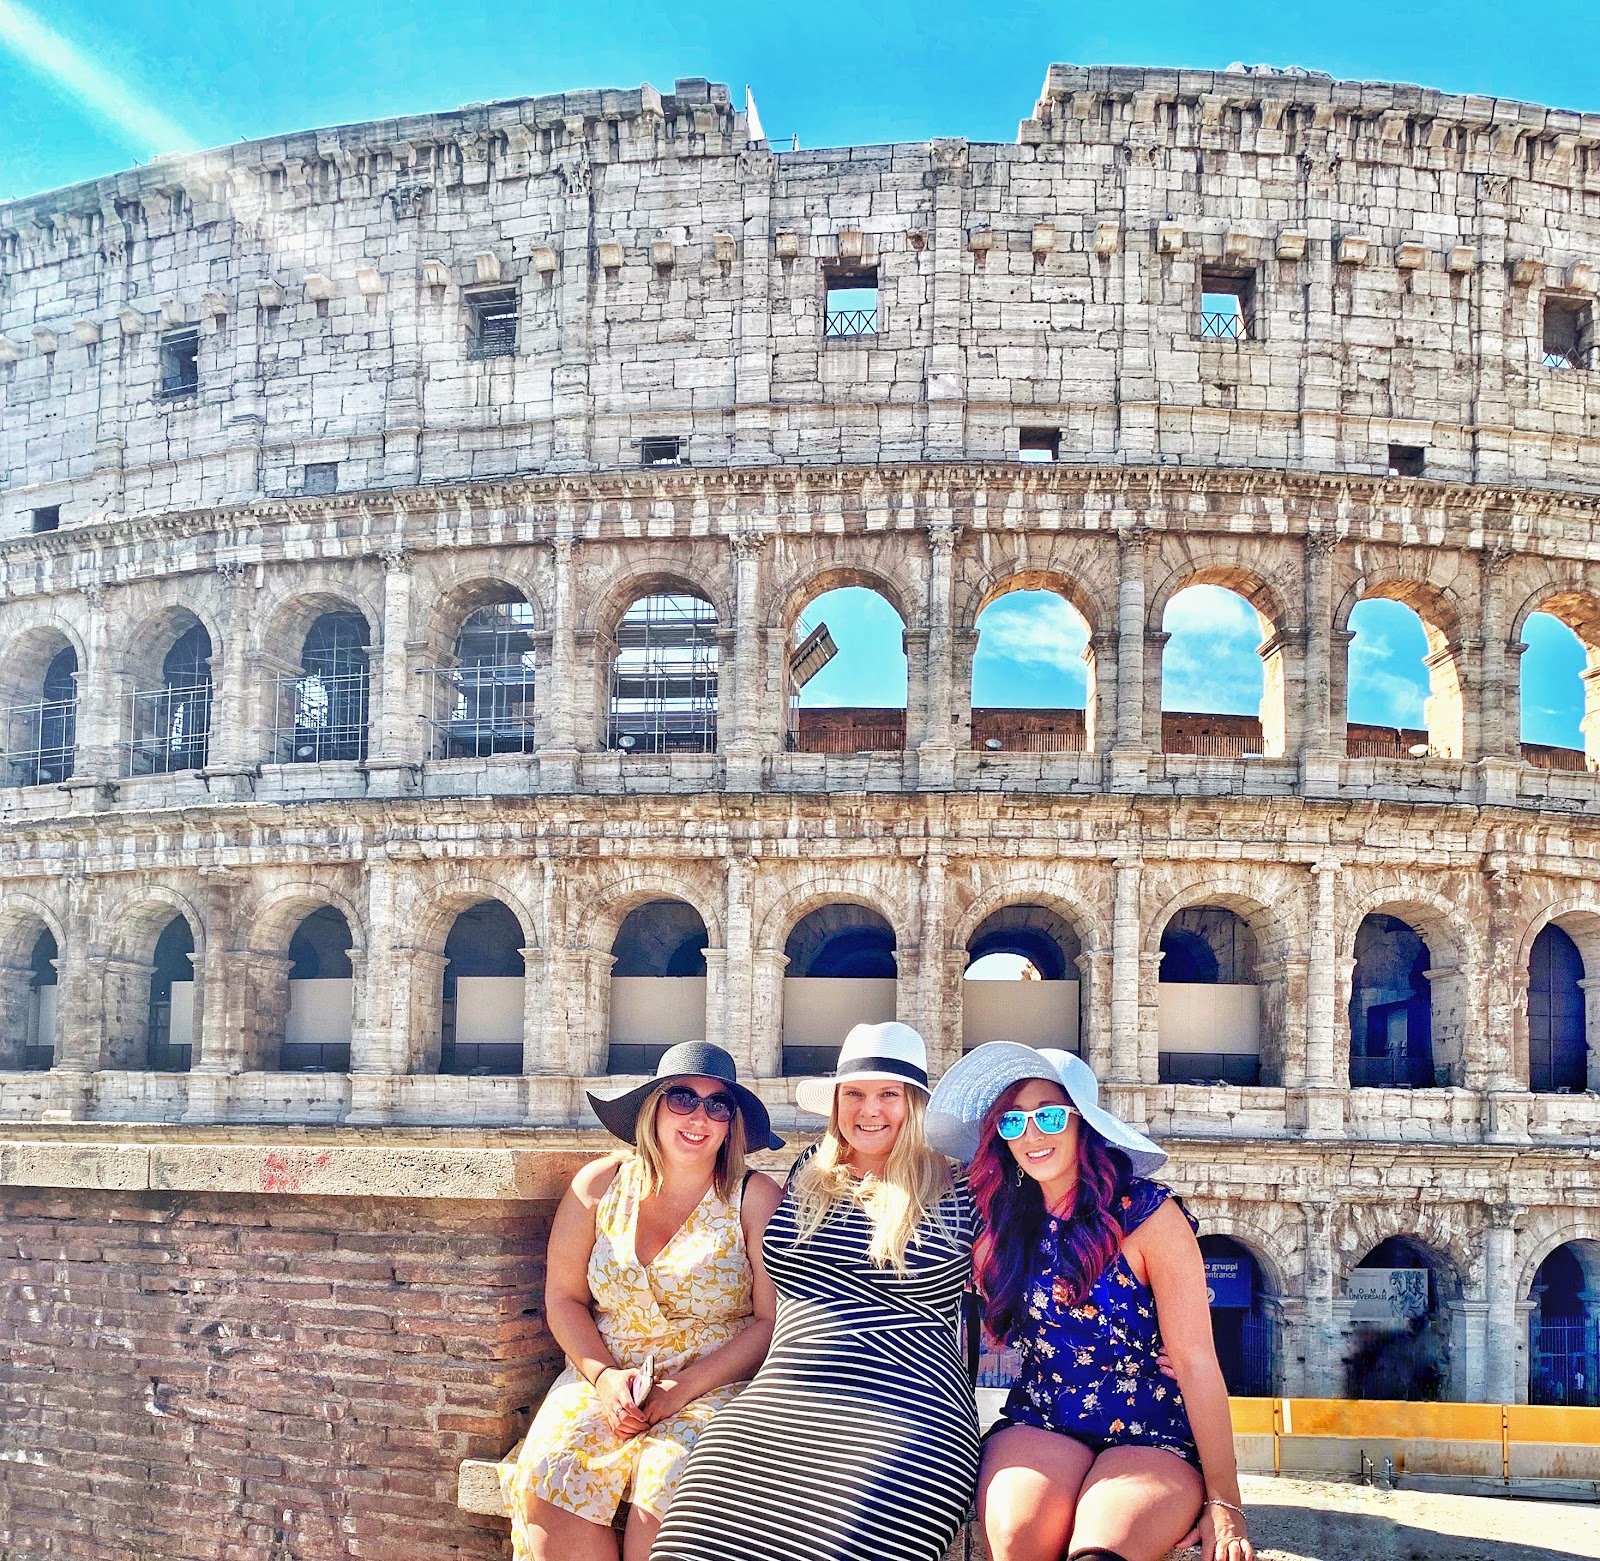 3 women posing in front of the Colosseum in Rome, Italy